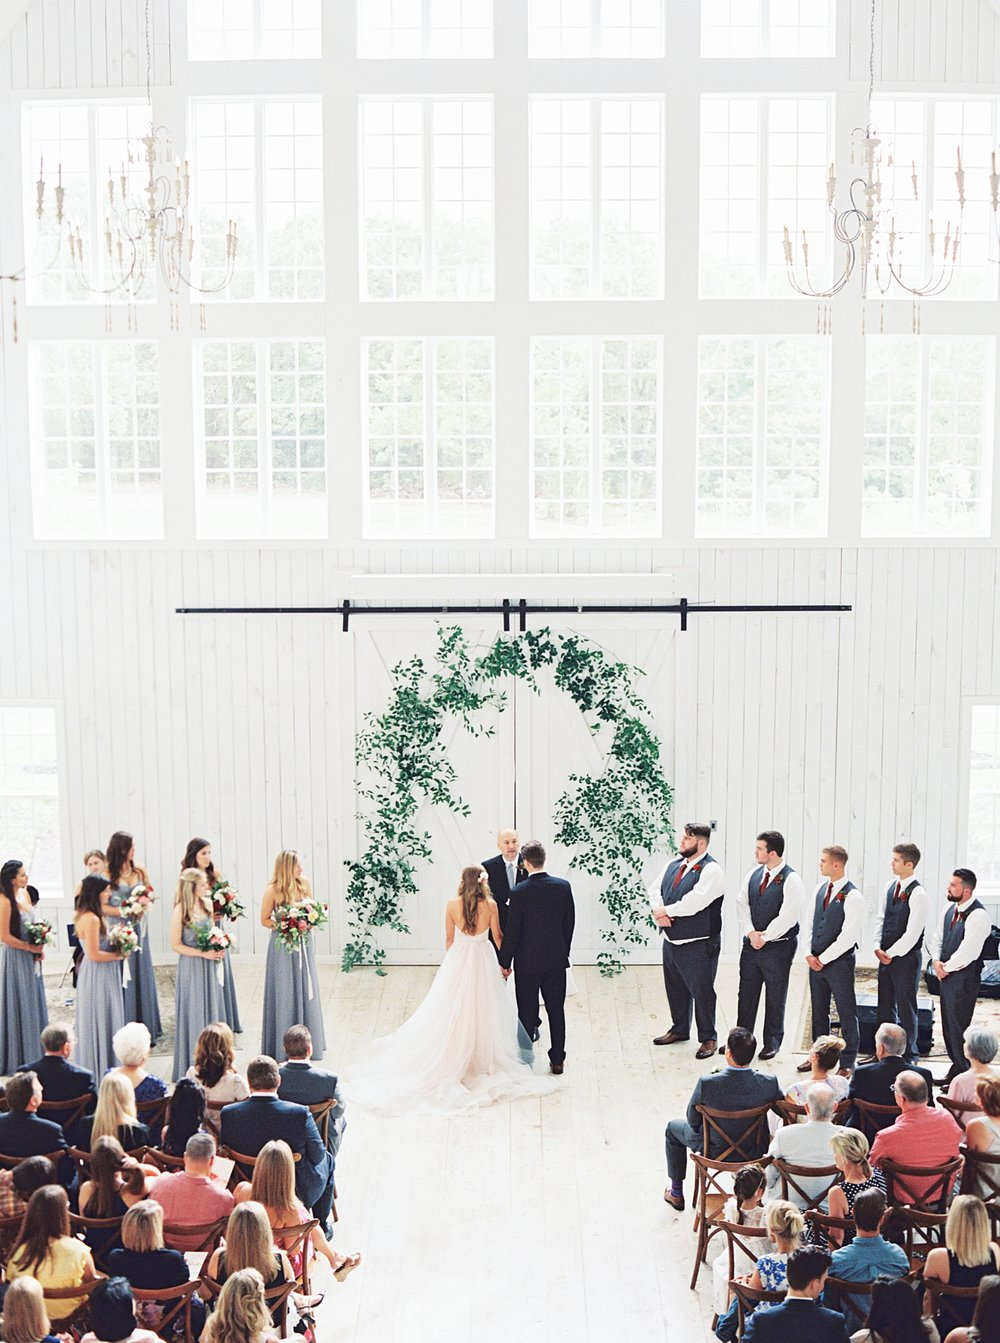 Venue: White Sparrow Barn | Dress: Tara Keely | Hair & Makeup: Beauty and the Blush | Florals: Oh Deery Floral